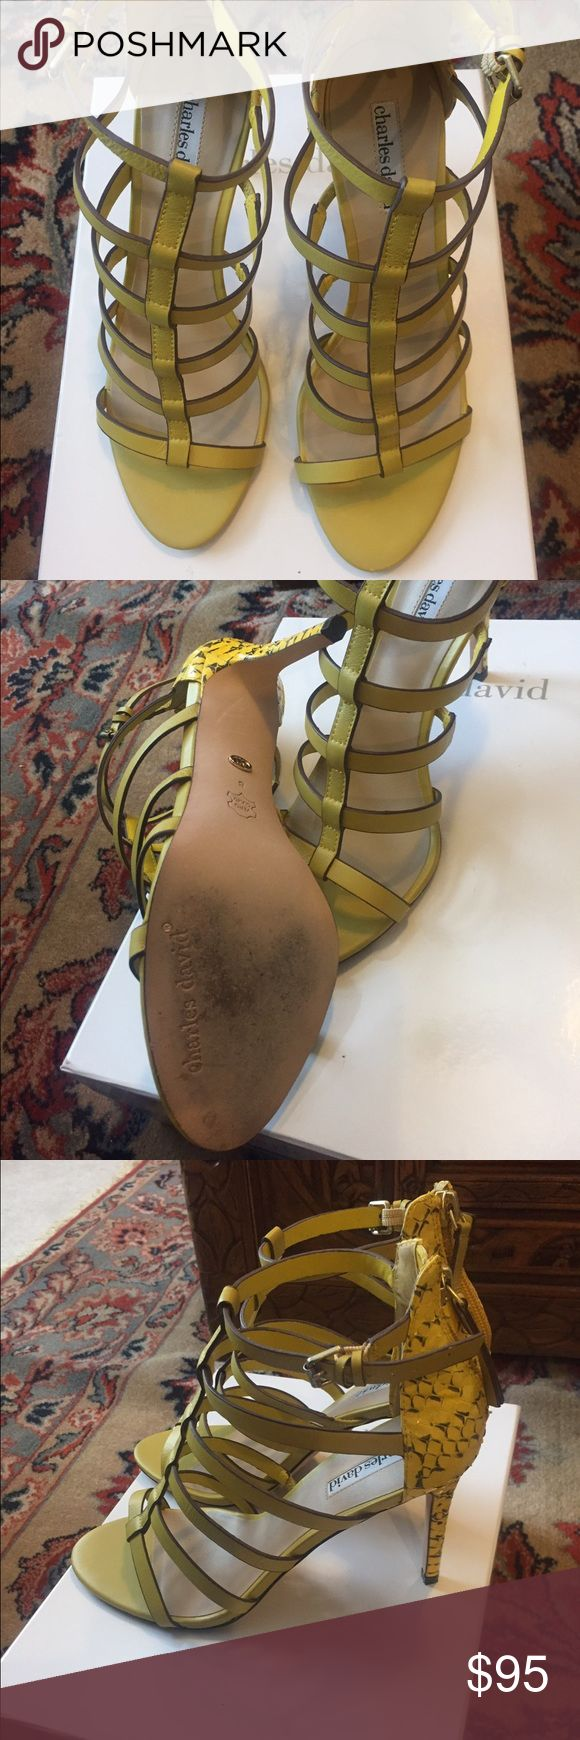 "Charles David Yellow Sandal Yellow leather Charles David Cage sandal python print heel back zip 4"" high Size 8m wore once comes in the box Charles David Shoes Sandals"